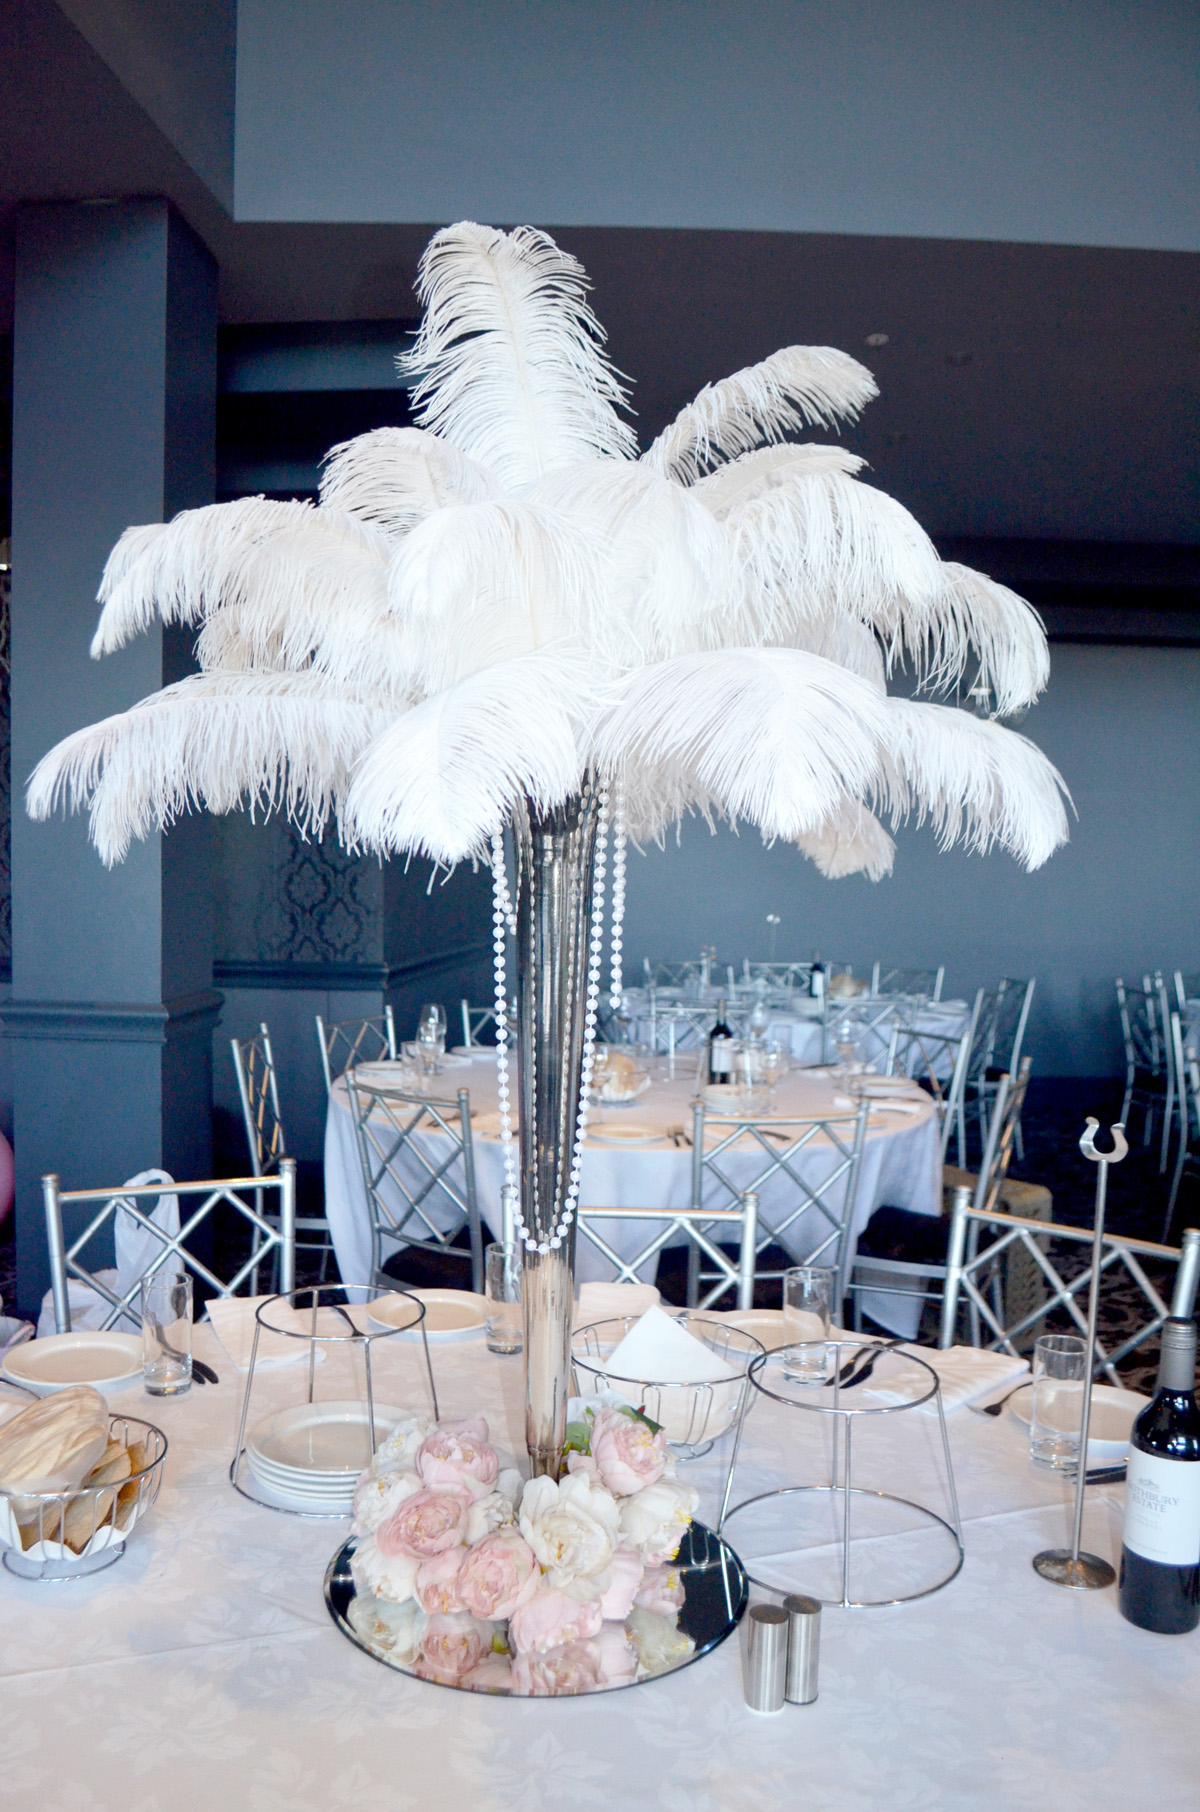 Silver Vase With White Ostrich Feathers And Artificial